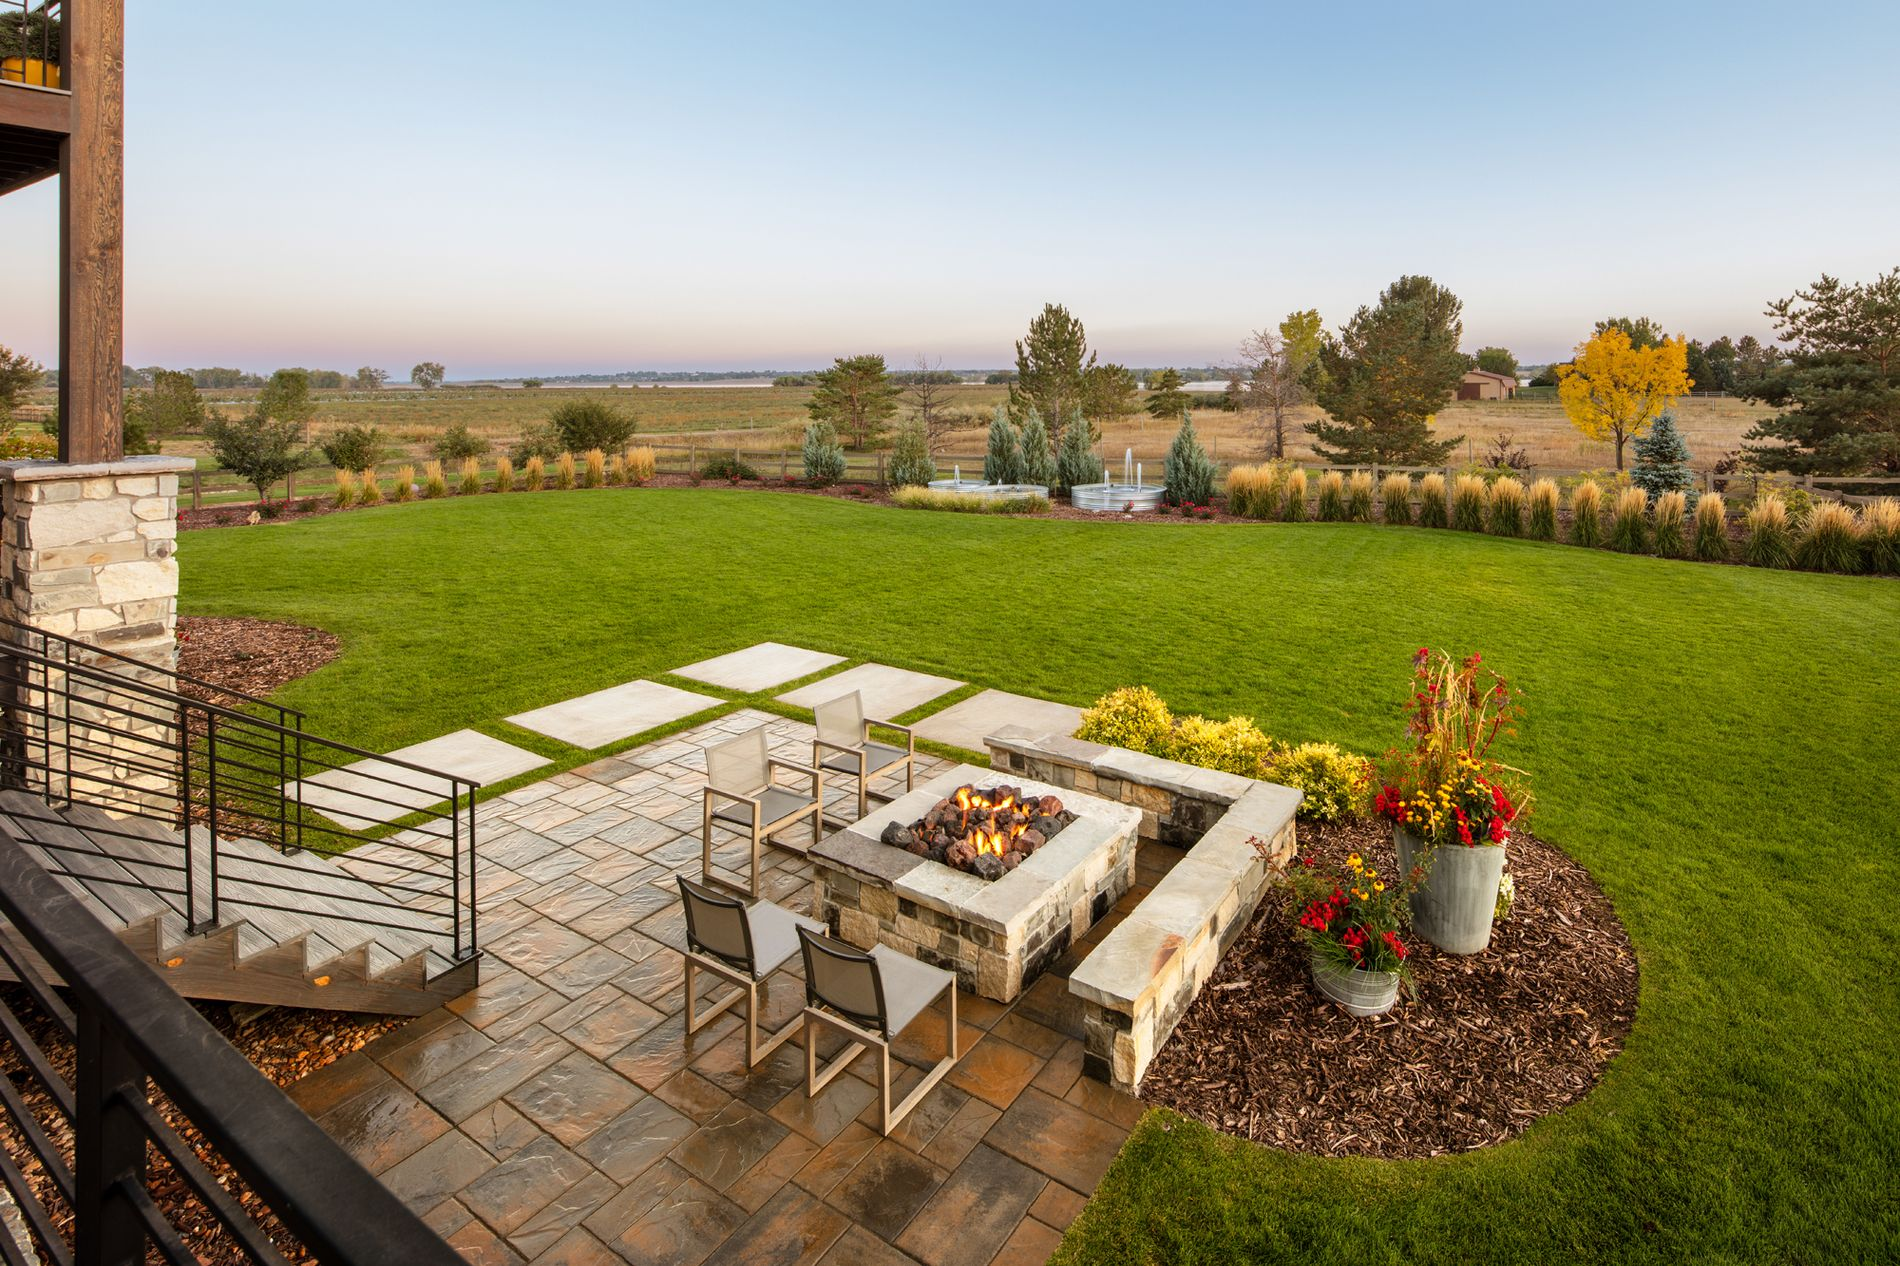 Paver patio with fire pit and seat wall